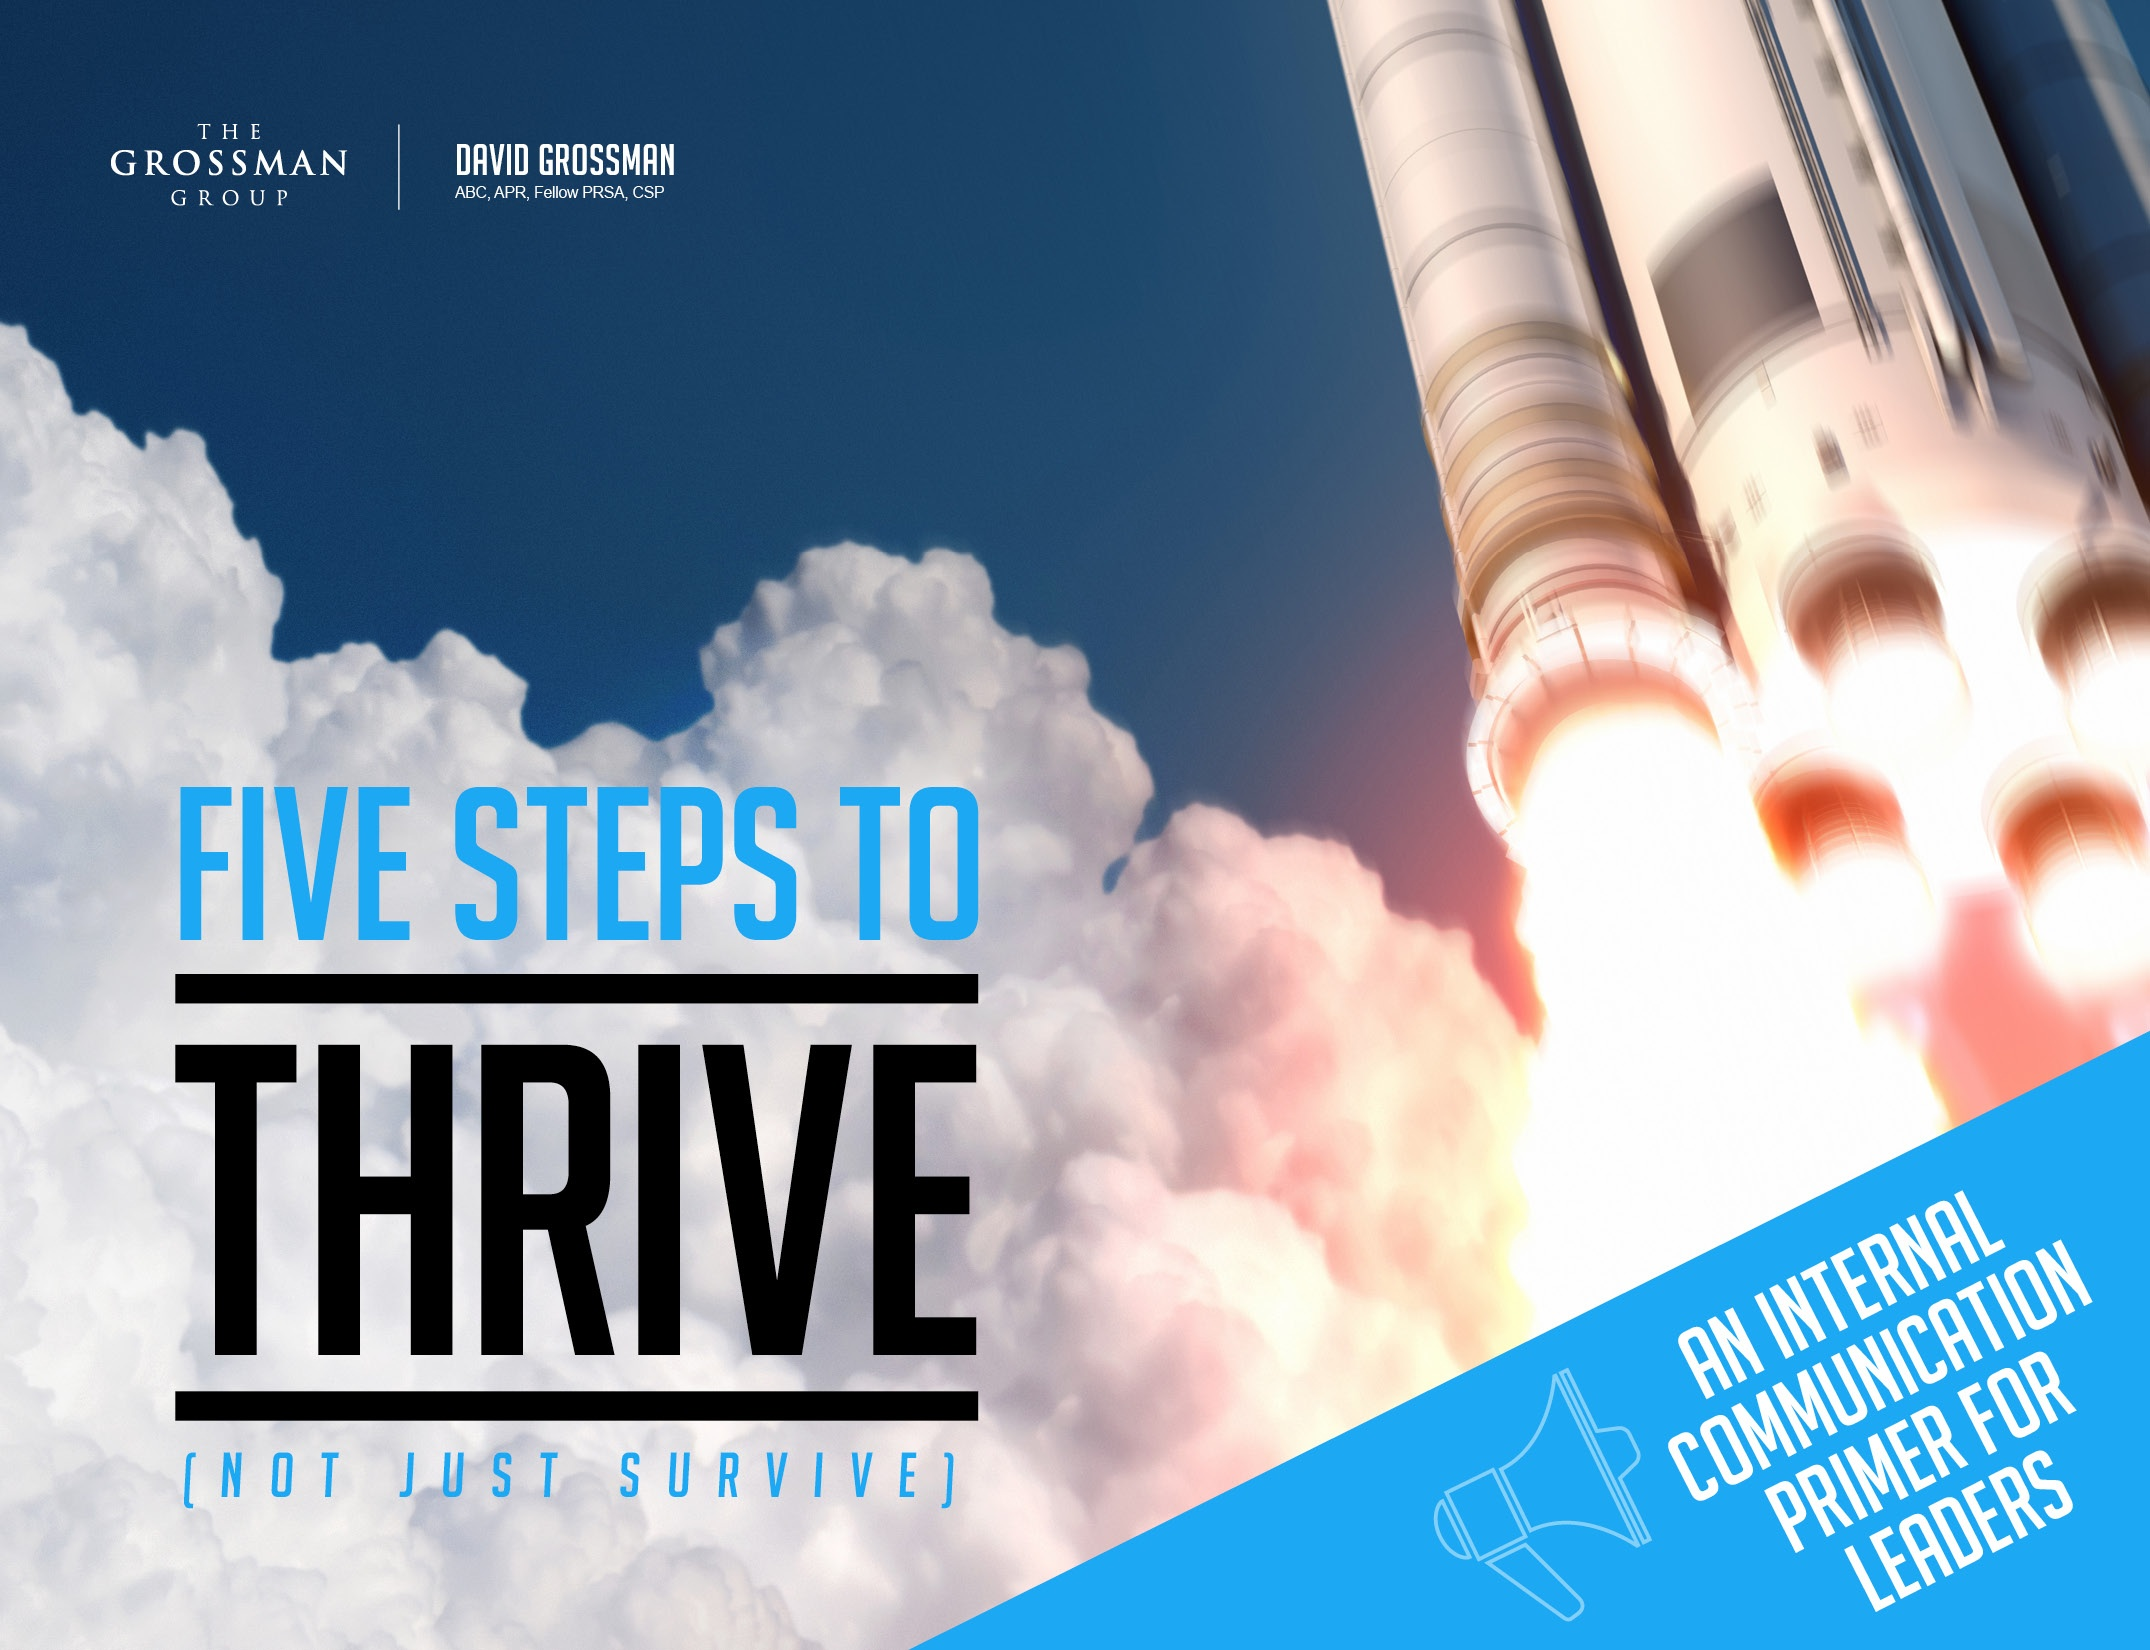 Five Steps to Thrive Ebook